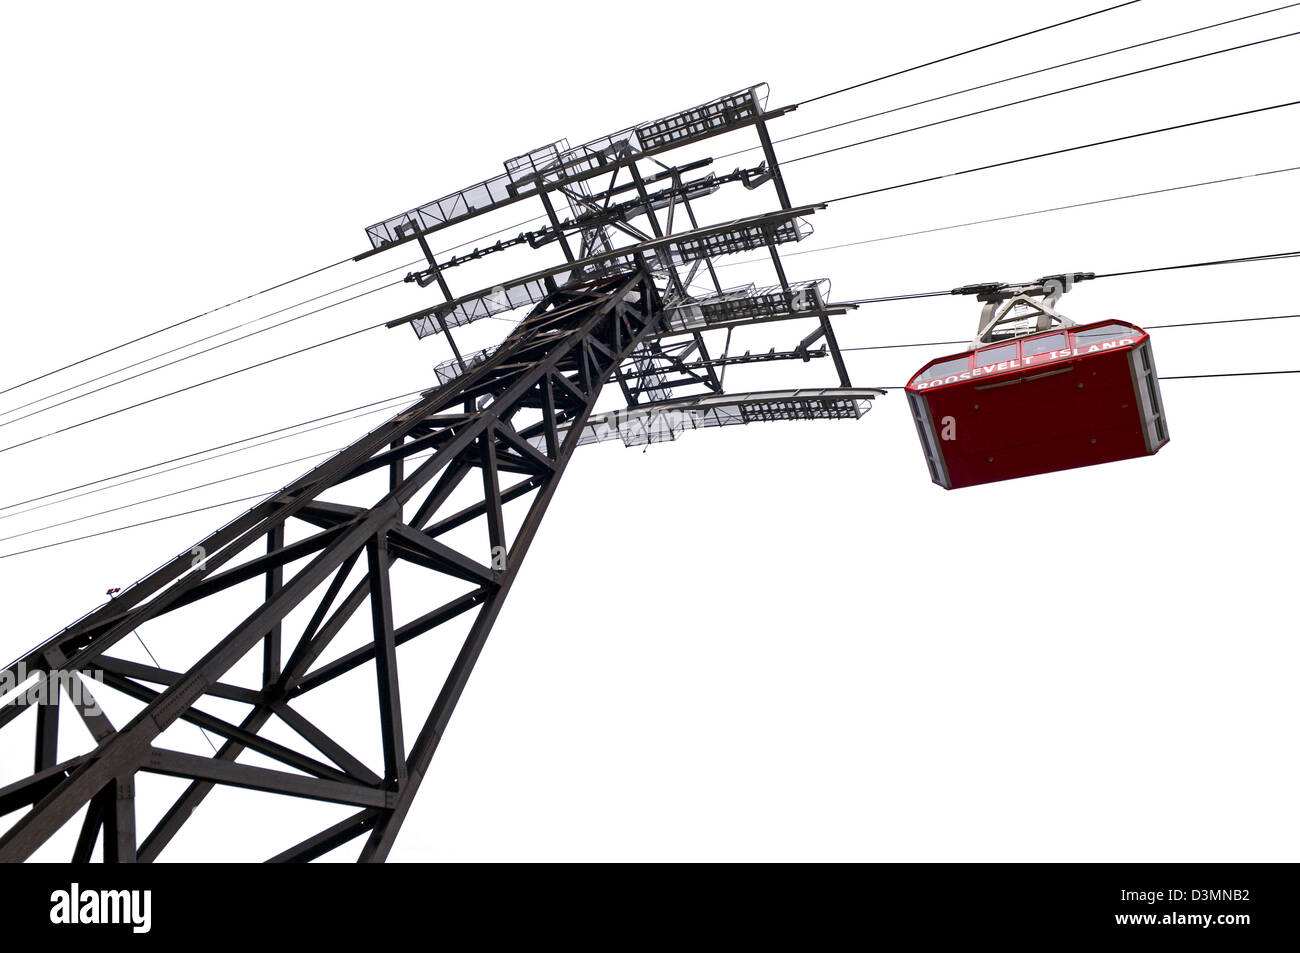 A graphic, from below view of the Roosevelt Island Tram. Stock Photo